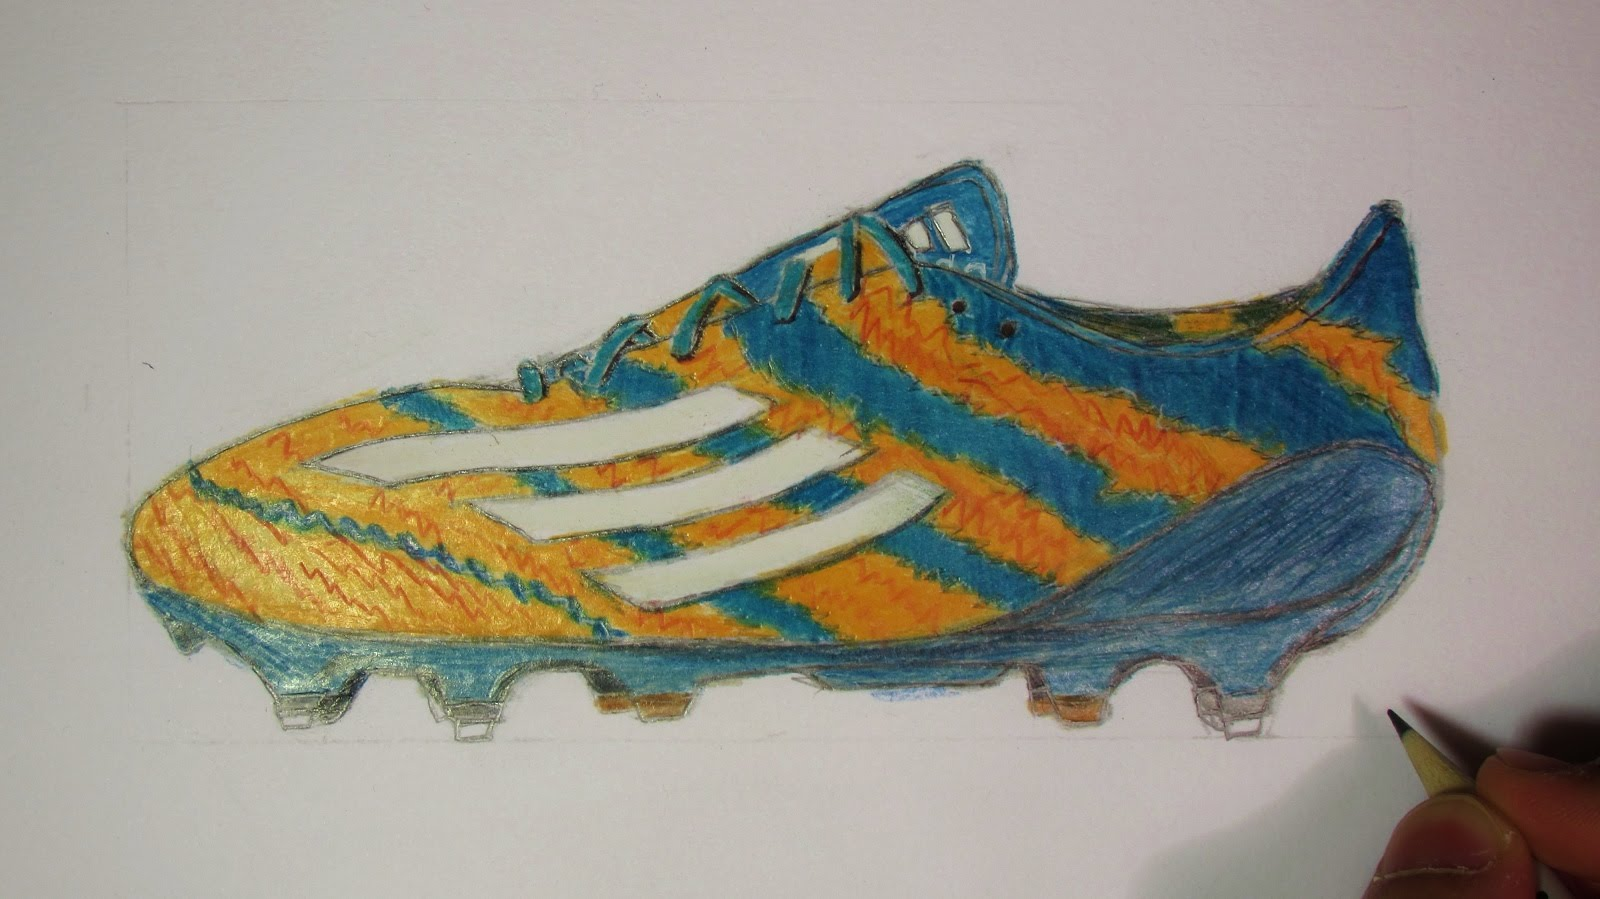 1600x899 Realistic Soccer Cleats Messi's Mirosar 10 (Speed Drawing)